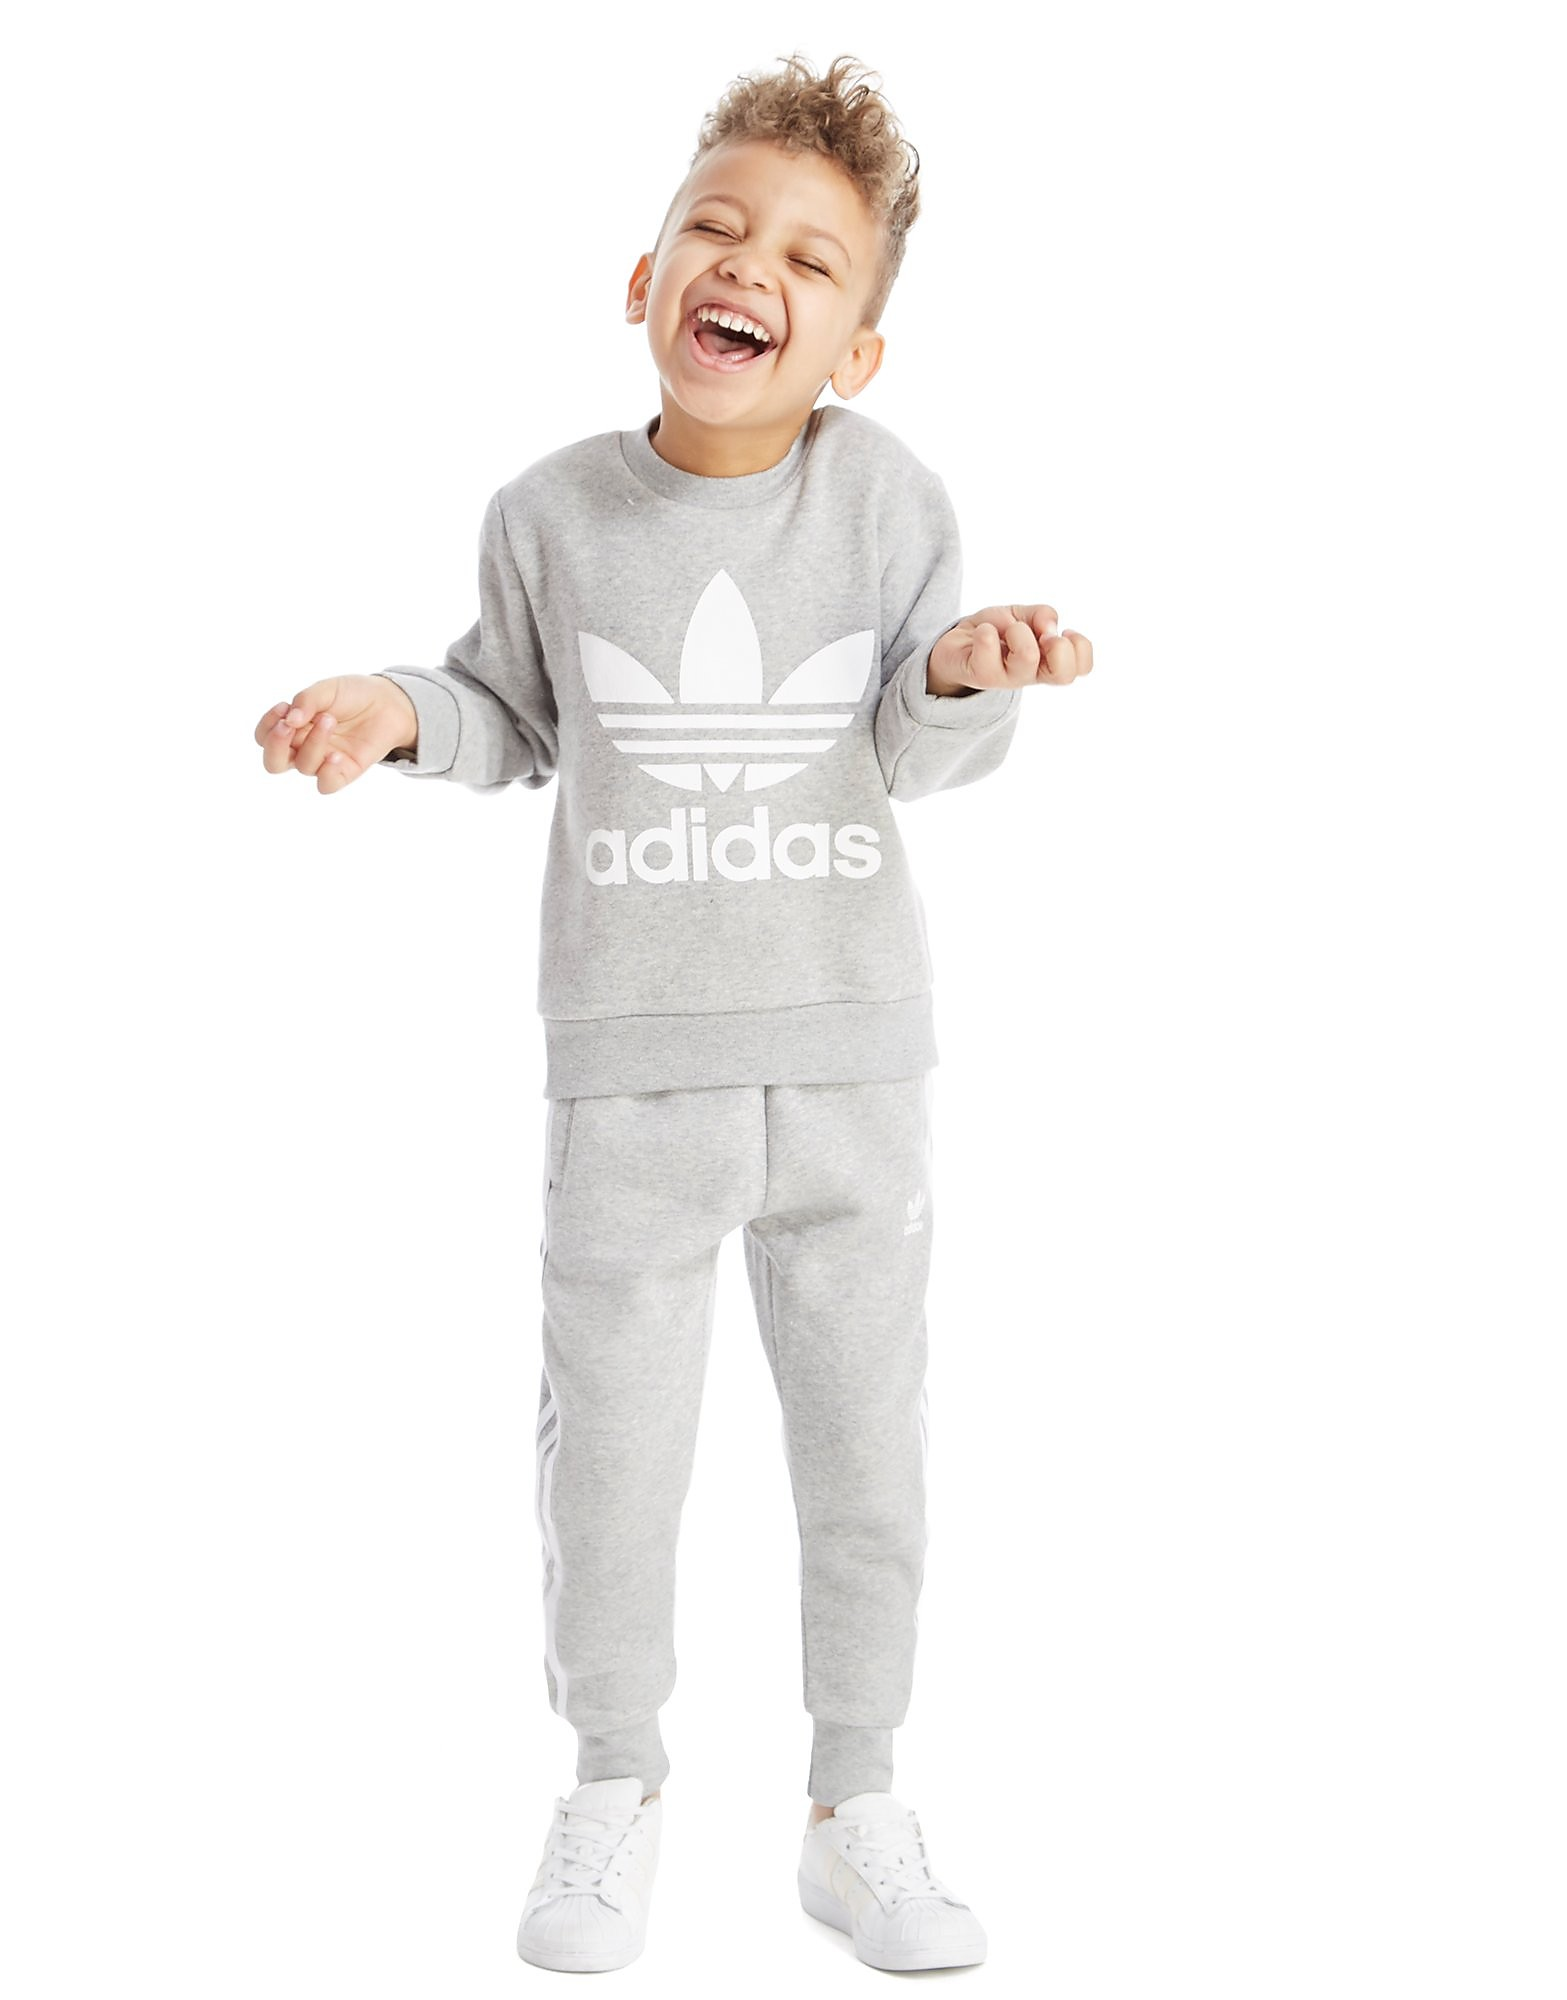 adidas Originals Adicolor Crew Suit Children